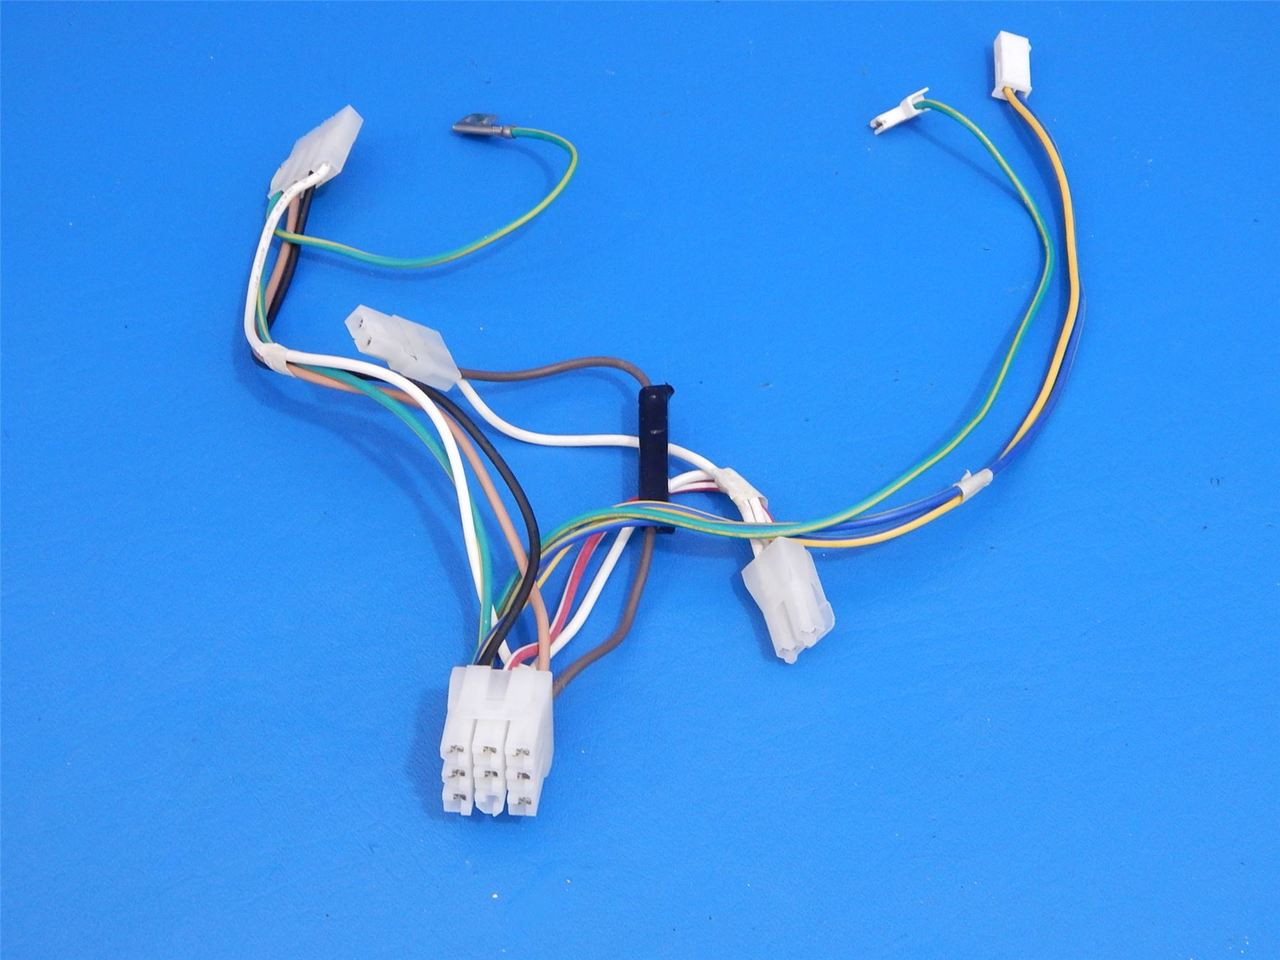 medium resolution of whirlpool bottom mount refrigerator wrf560smyw02 freezer wire harness w10487766 ice cold beer appliance parts